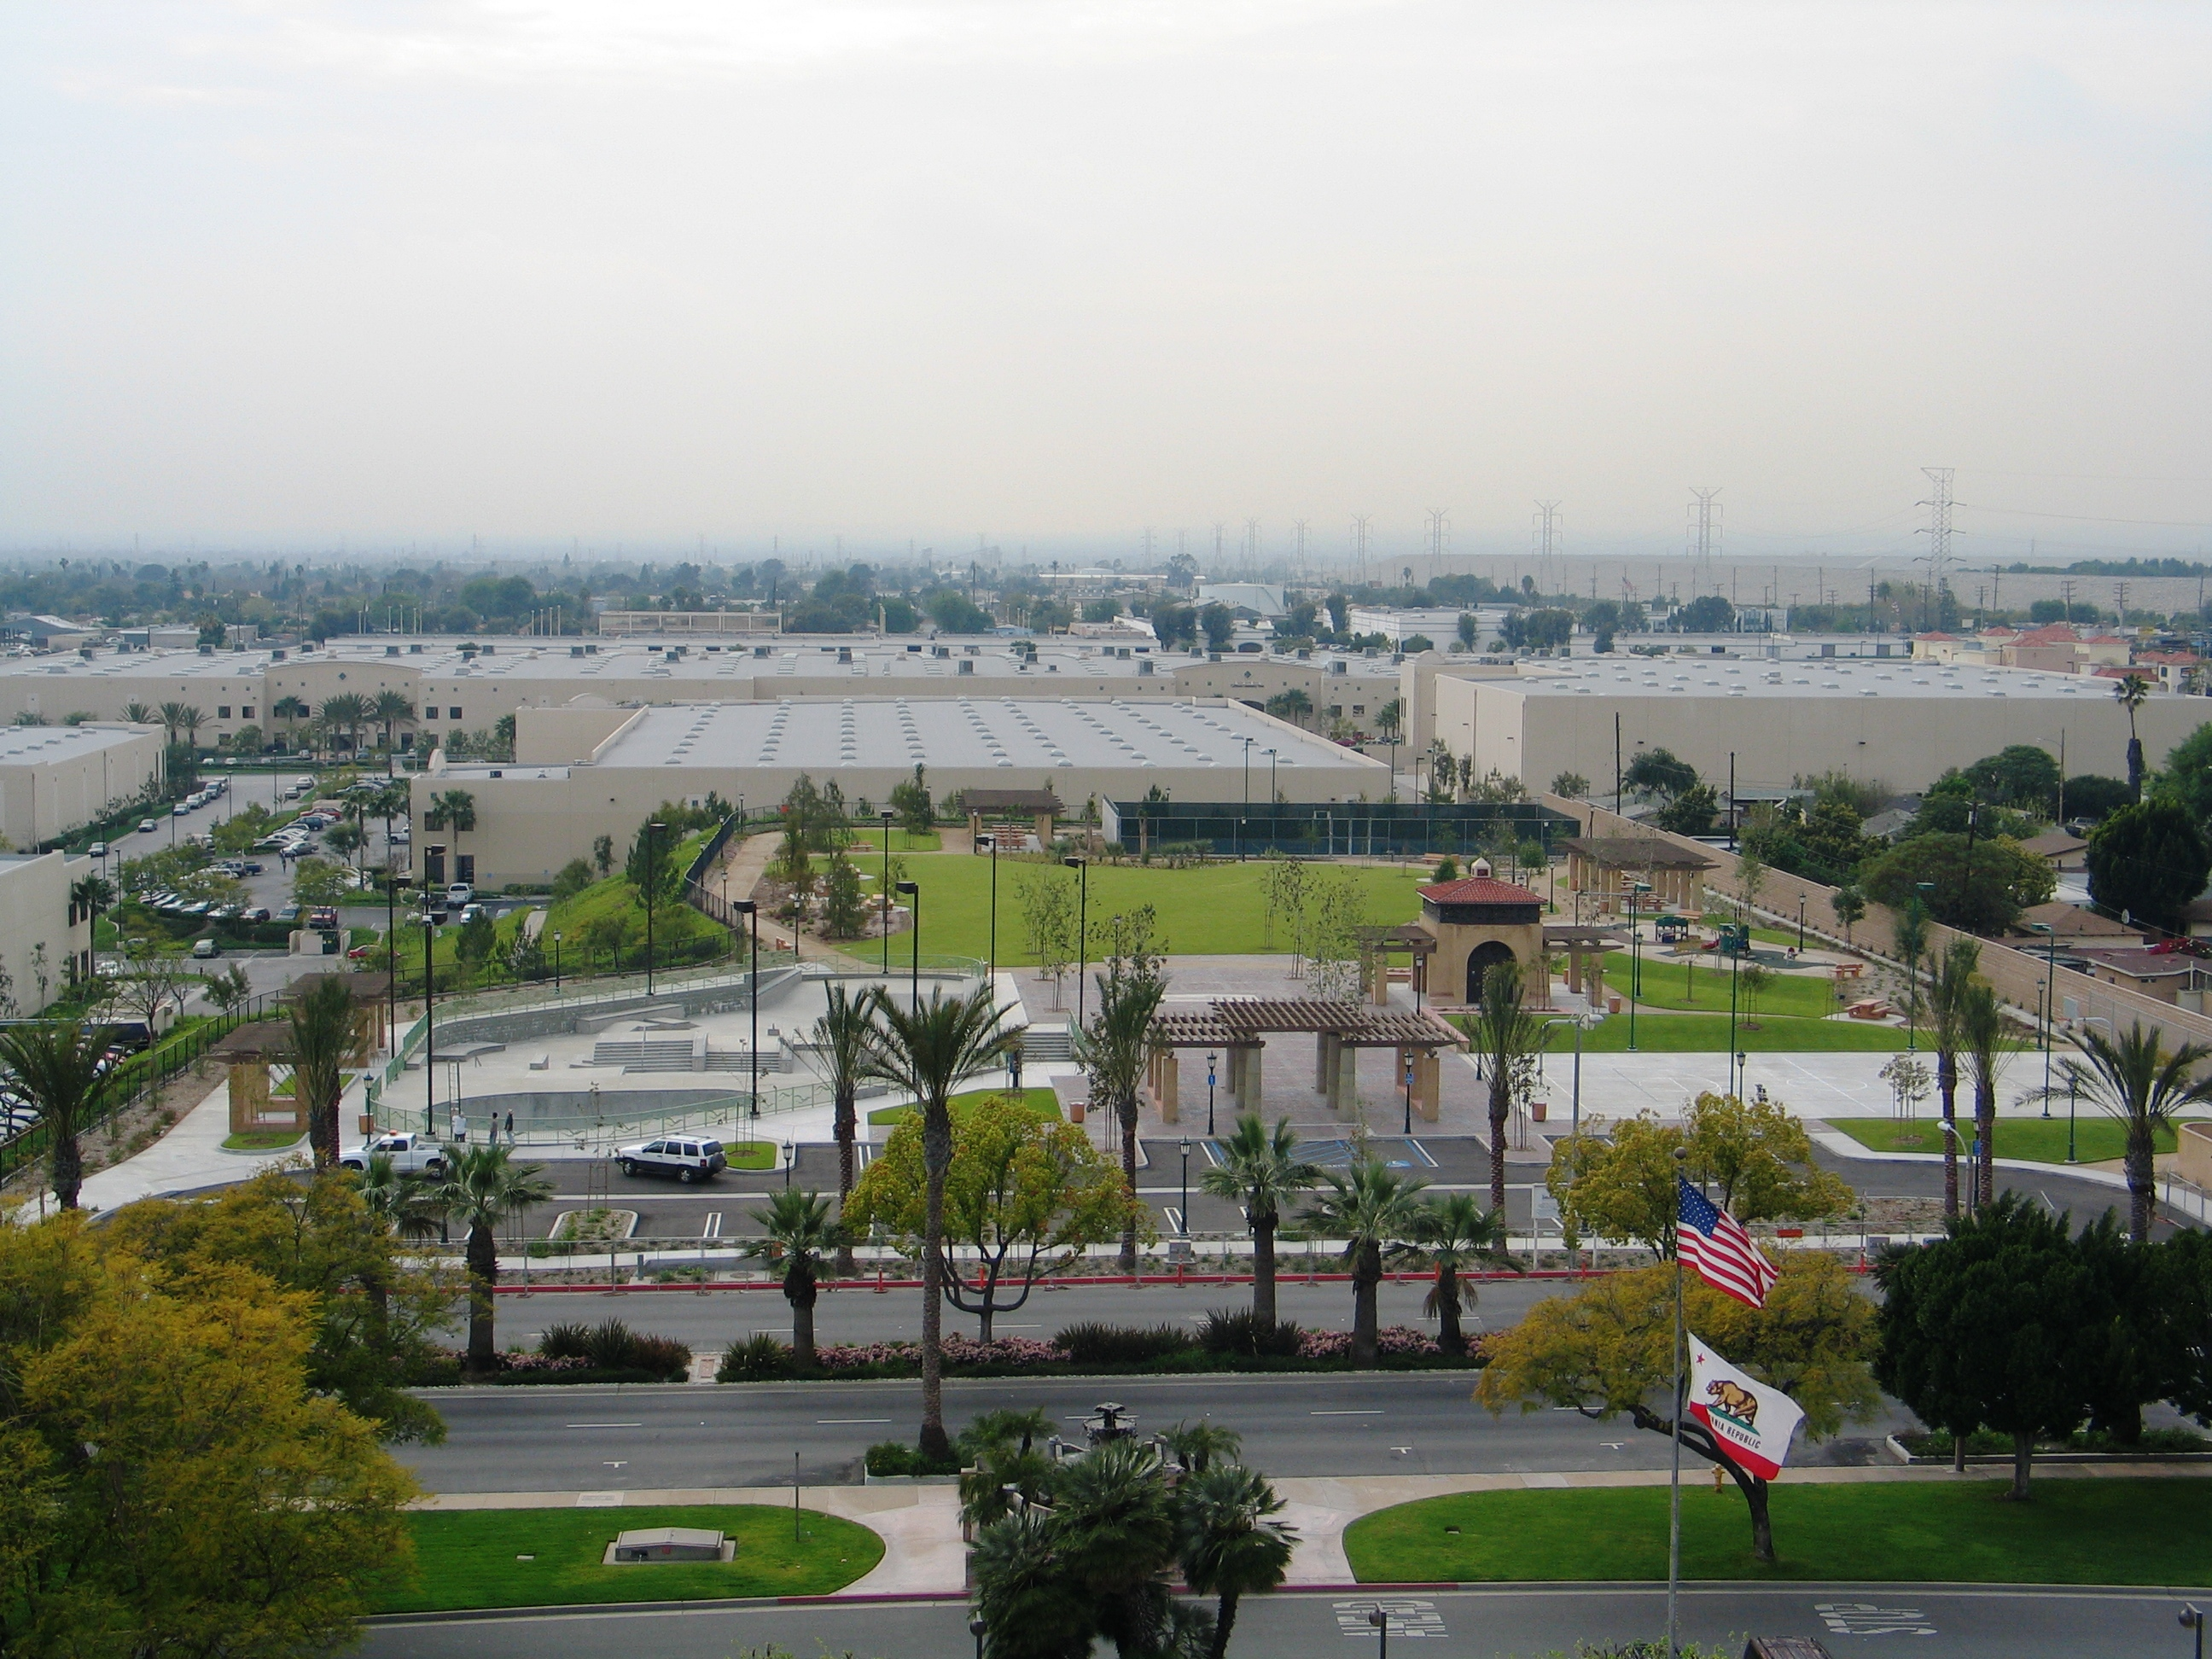 Irwindale Overview